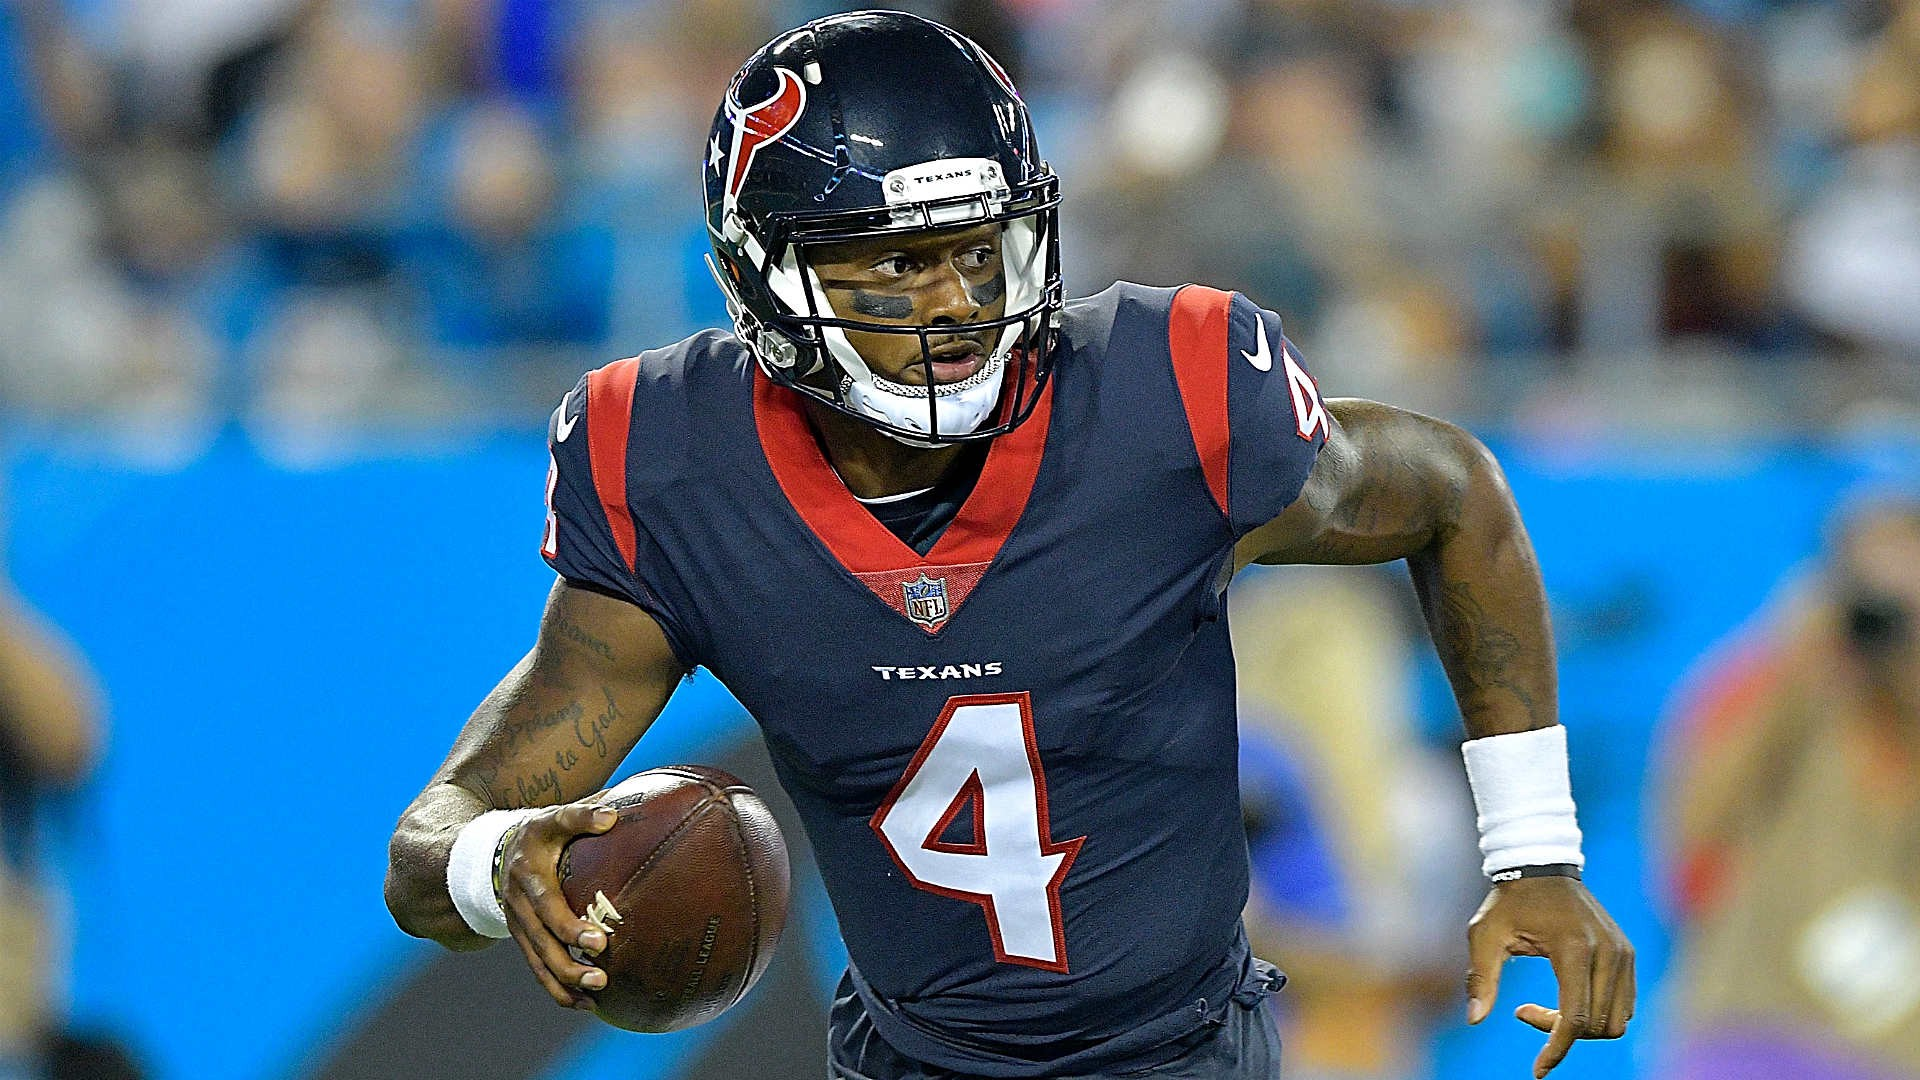 Fantasy Football Sleepers that Could Save Your Season